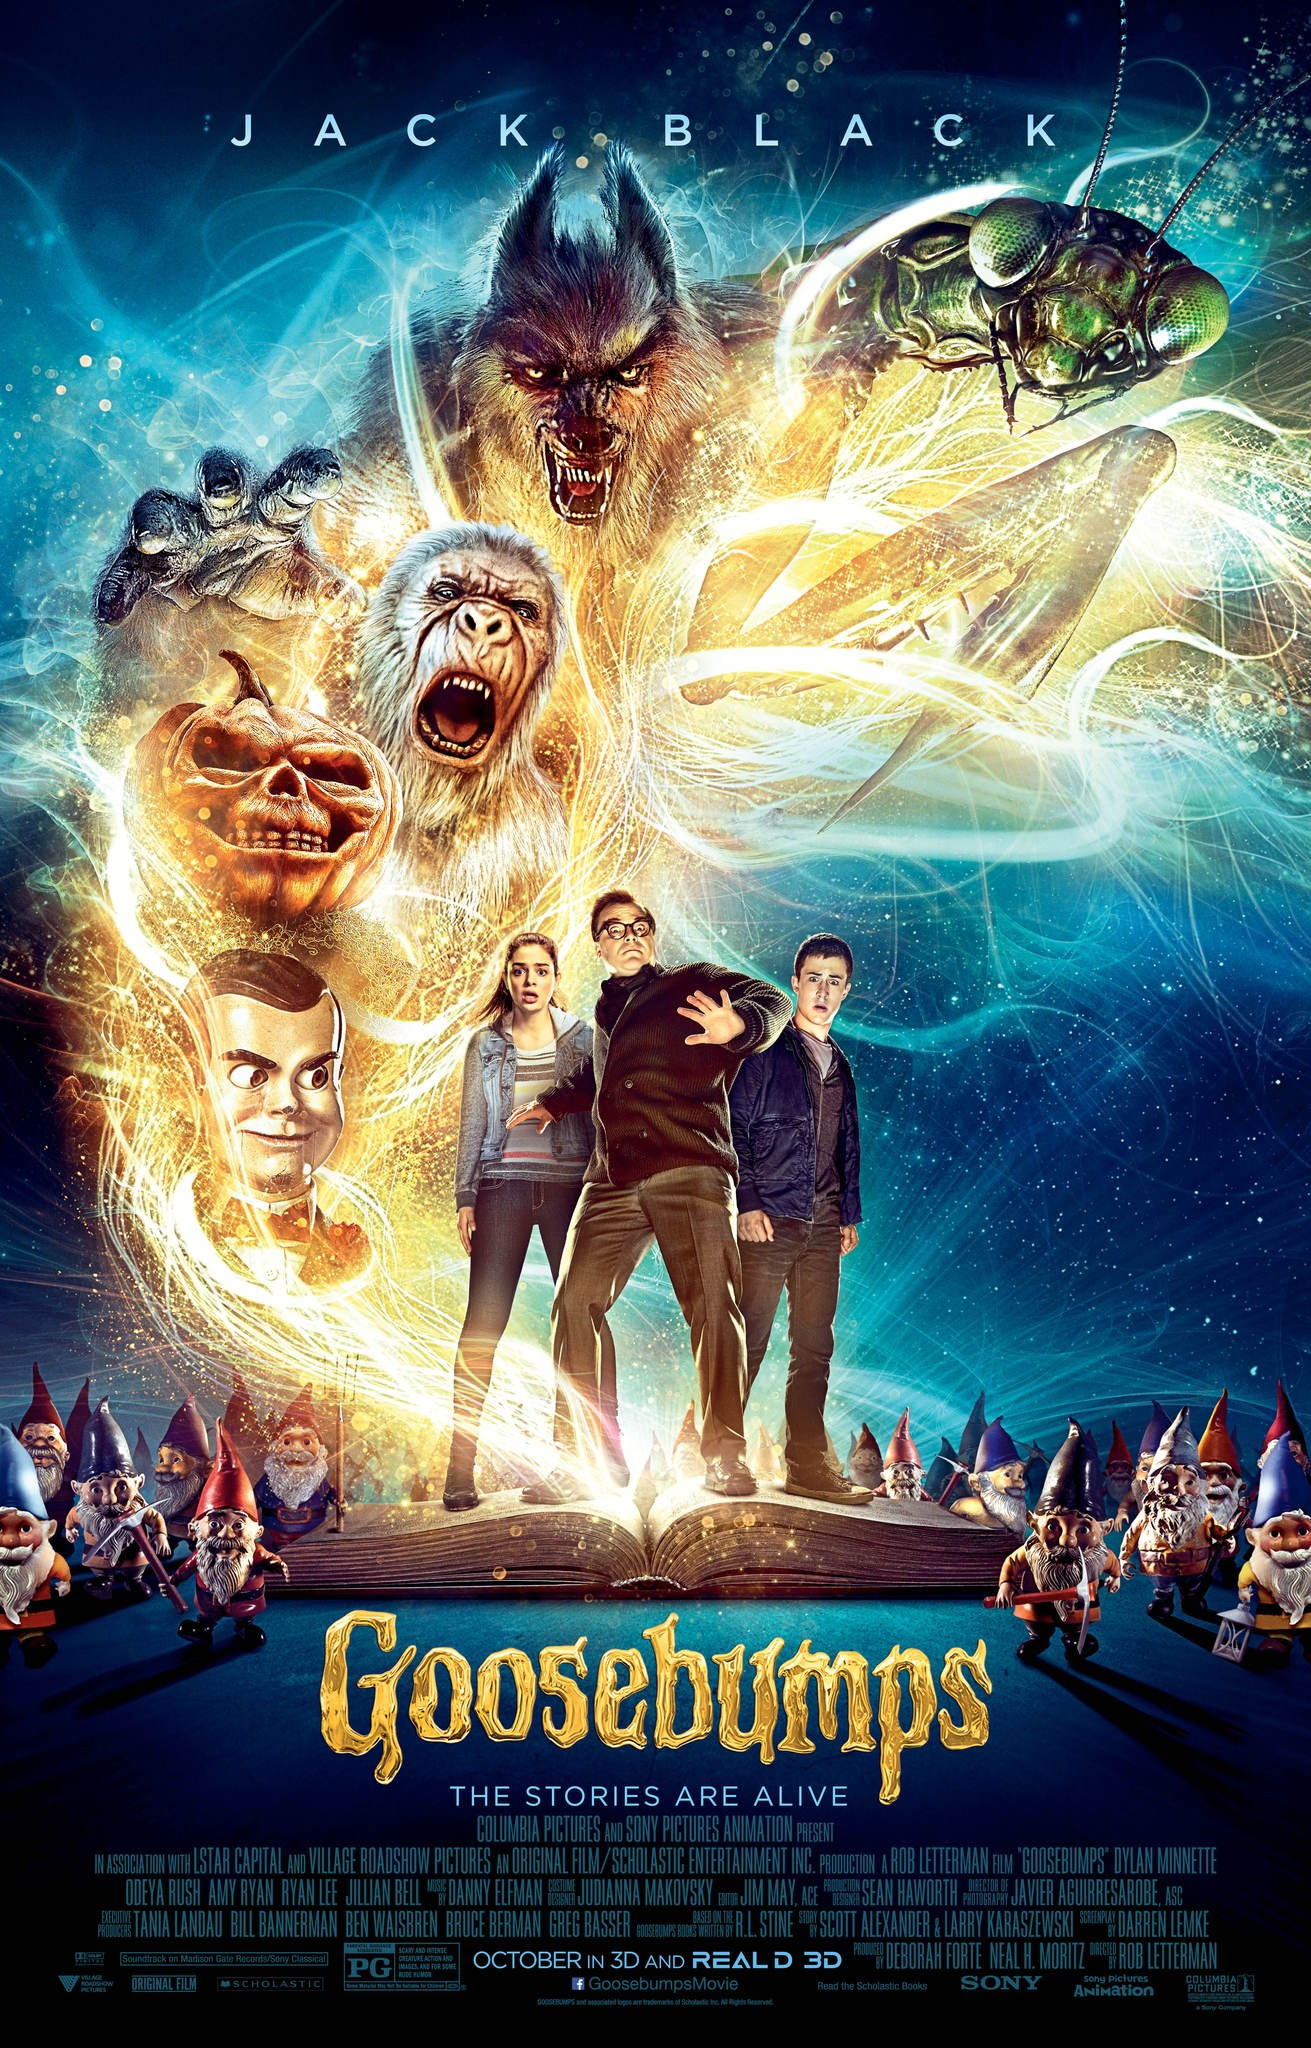 Three people stand in the center while scary creatures of all sorts surround them. Movie poster.